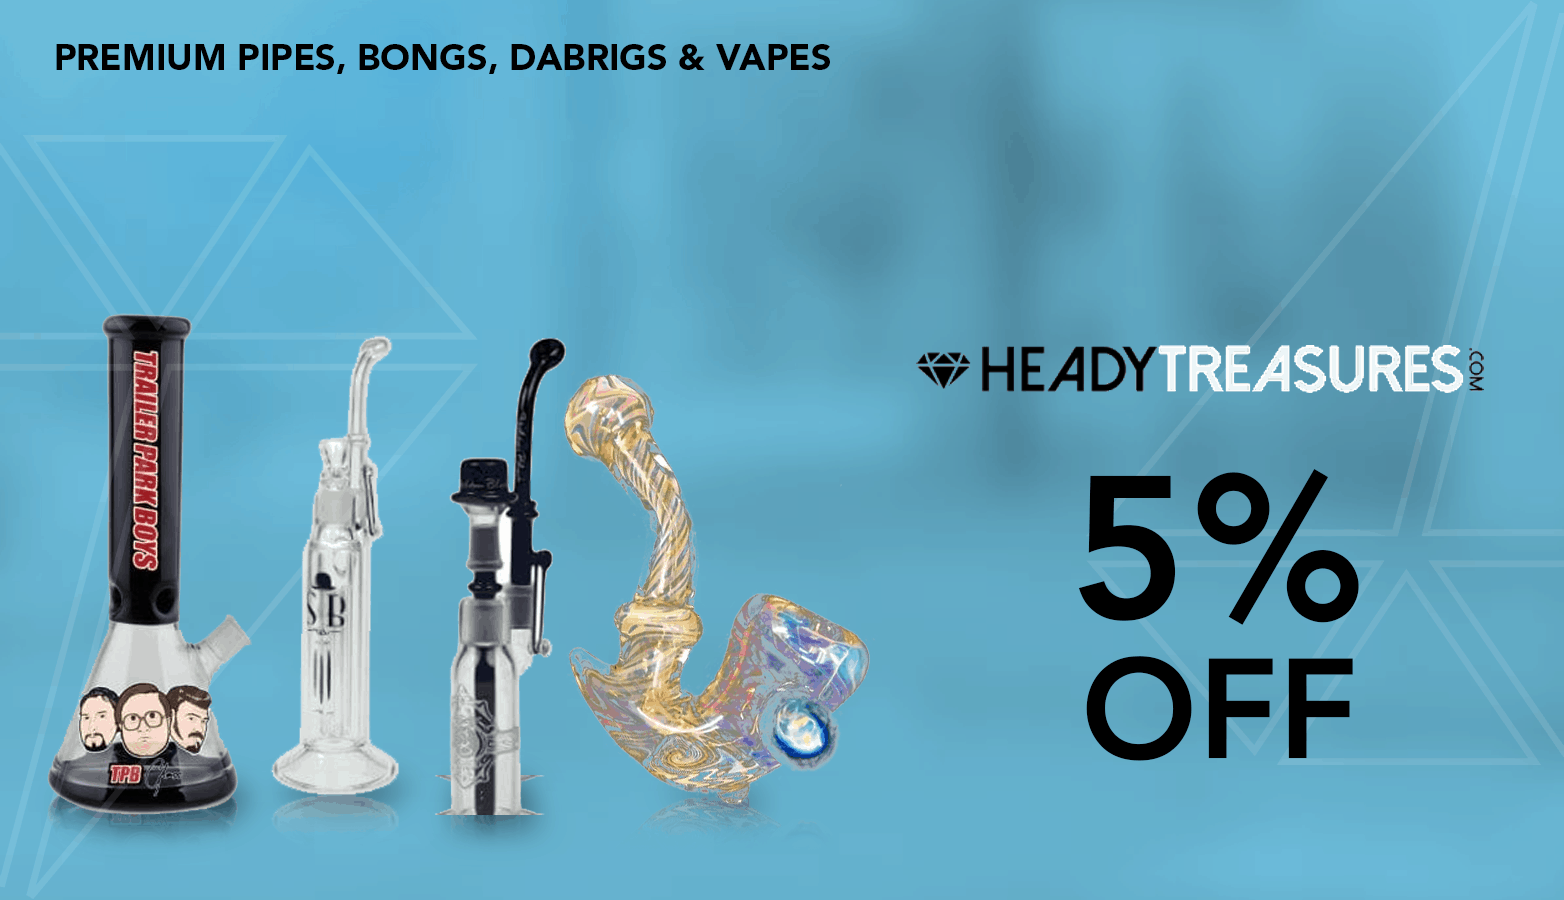 Heady Treasures Coupon Codes - Head Shop - Vape - Pipes - Bongs - Dab Rigs - Save On Cannabis - Marijuana Coupon Codes coupon codes